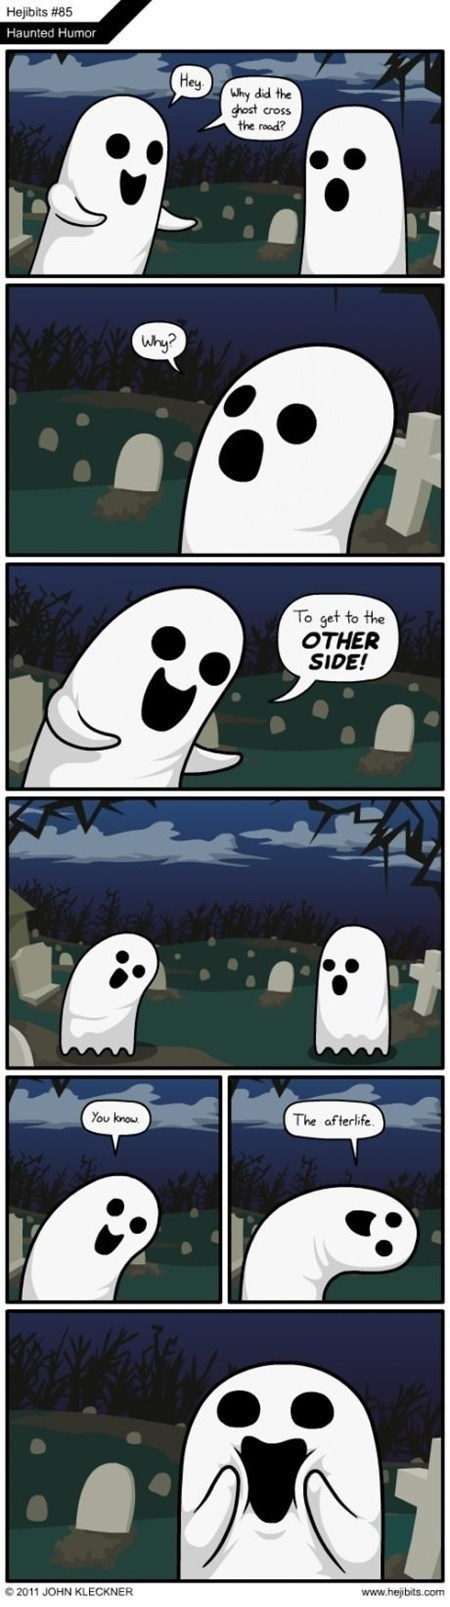 cross the road ghosts graveyard jokes Memes the internets - 6448840960